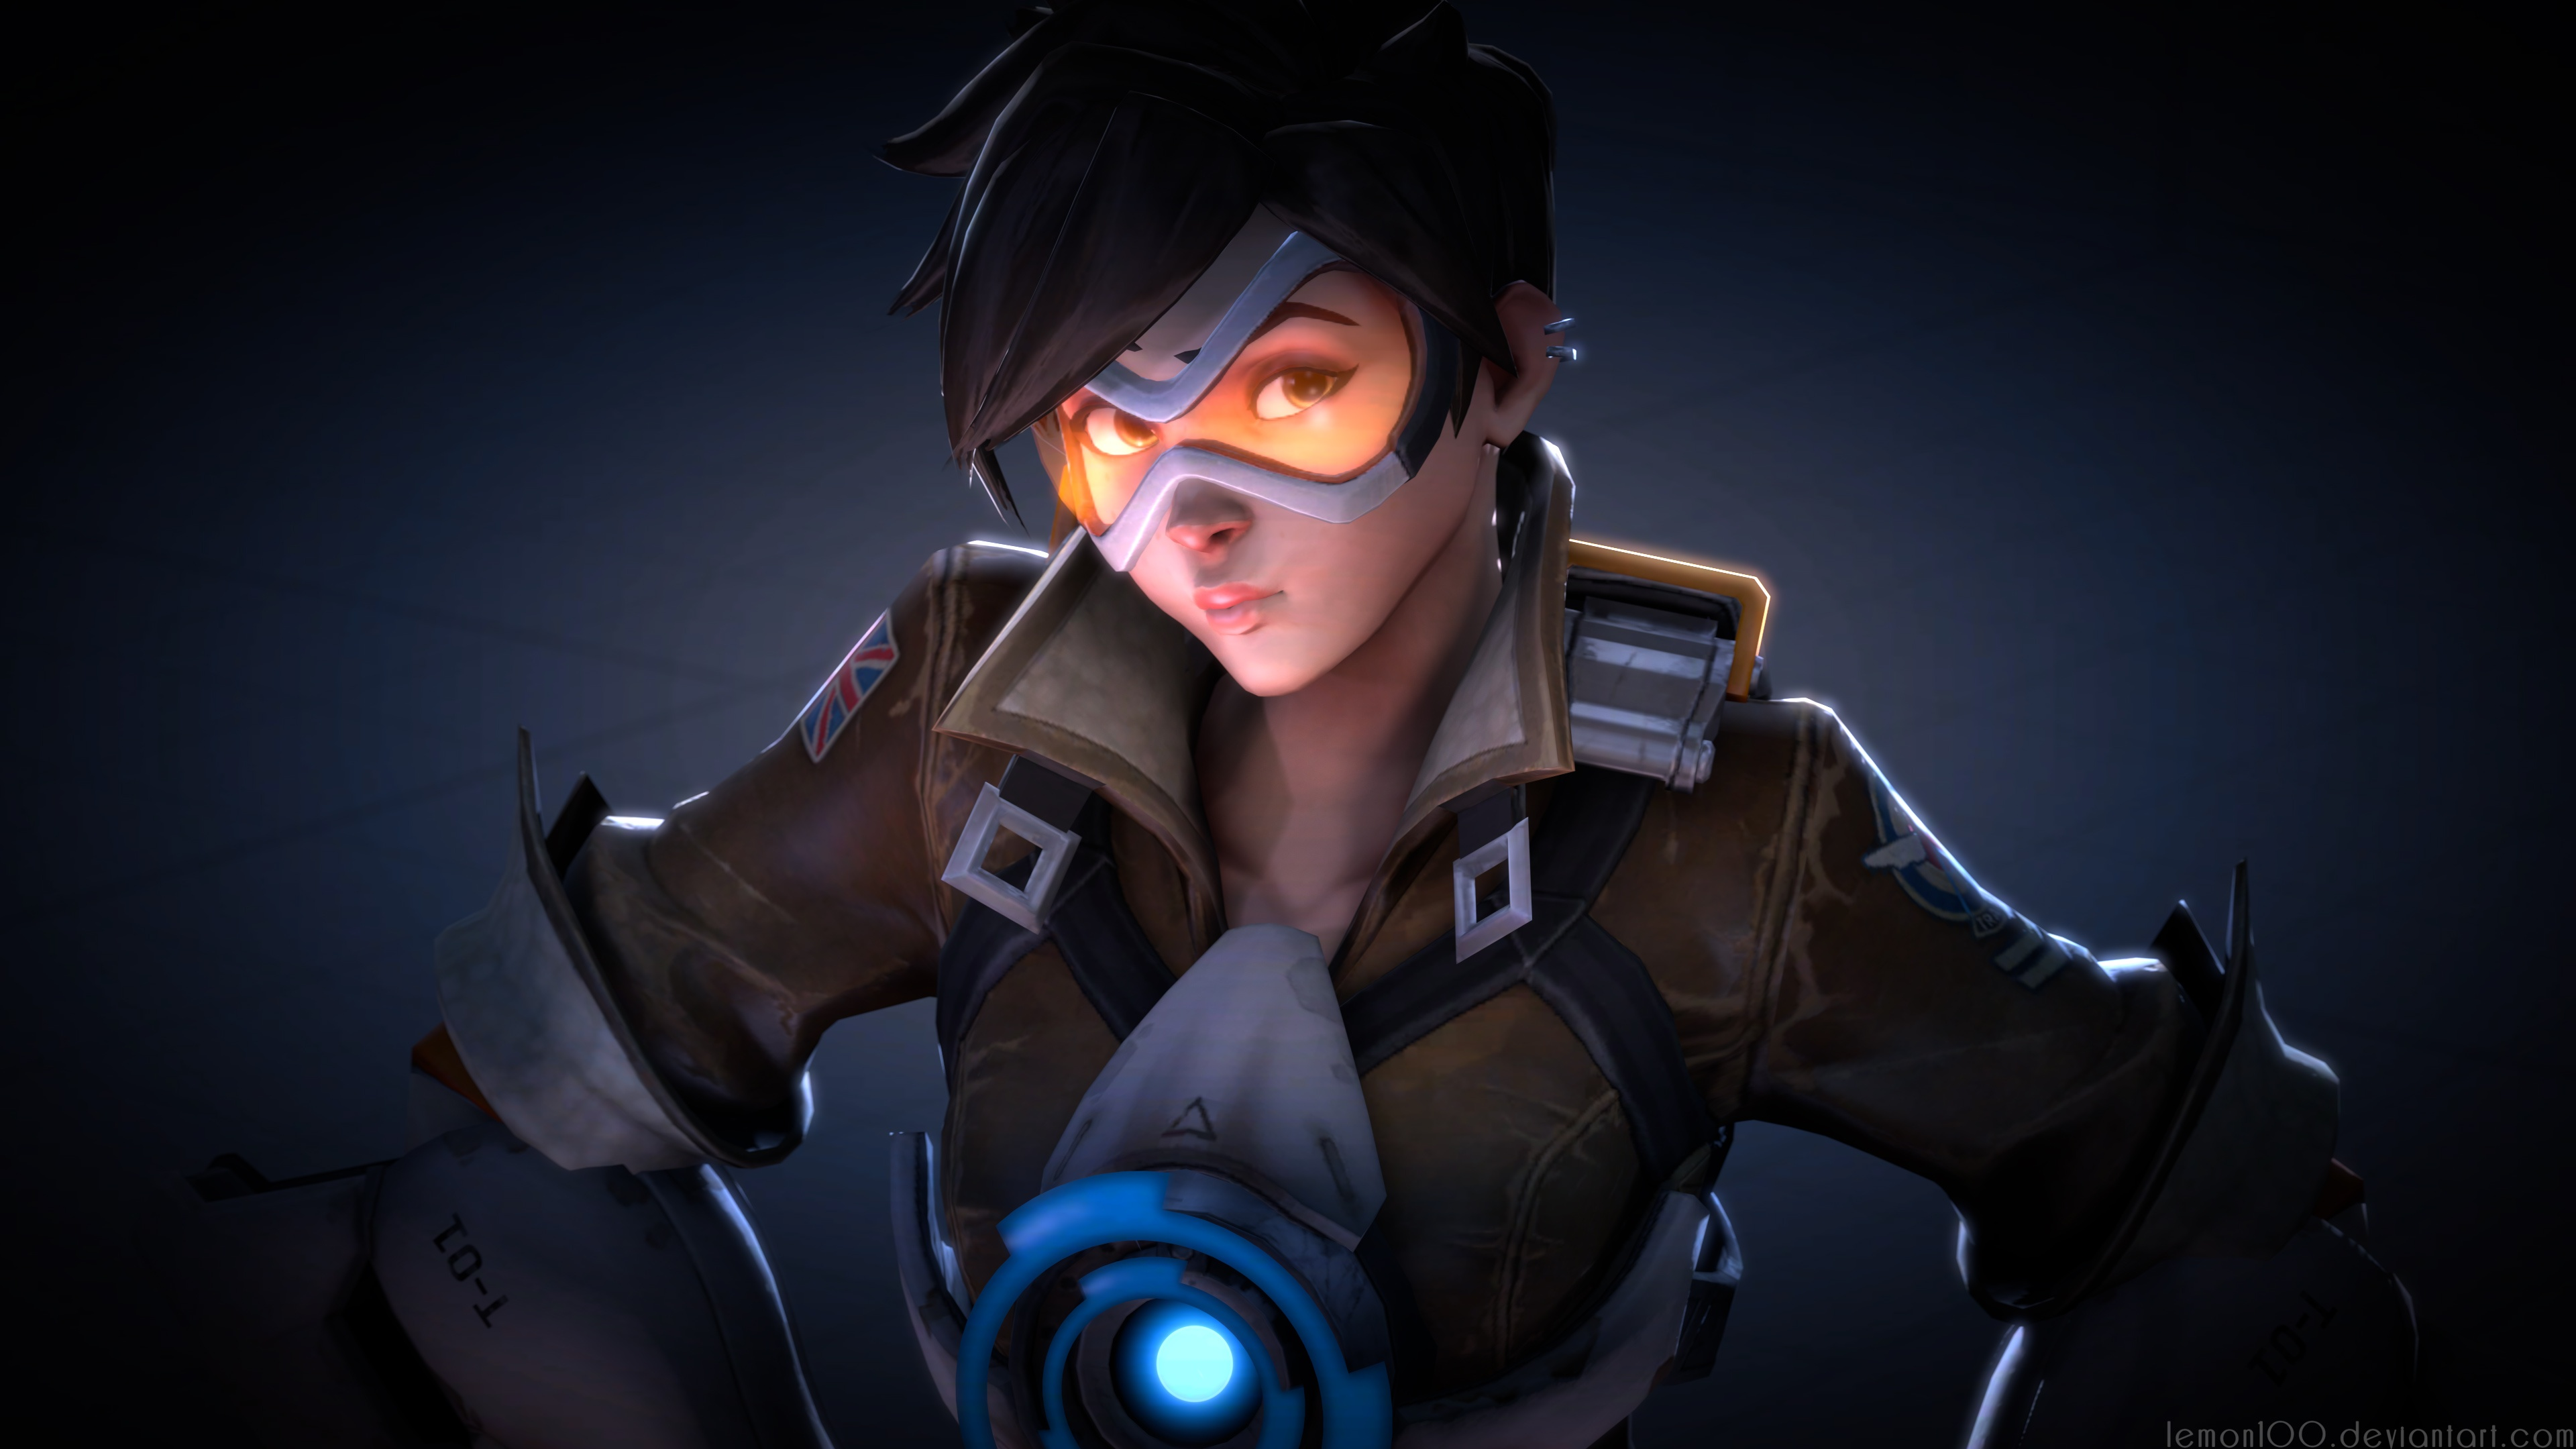 Tracer 4k Ultra Hd Wallpaper Background Image 3840x2160